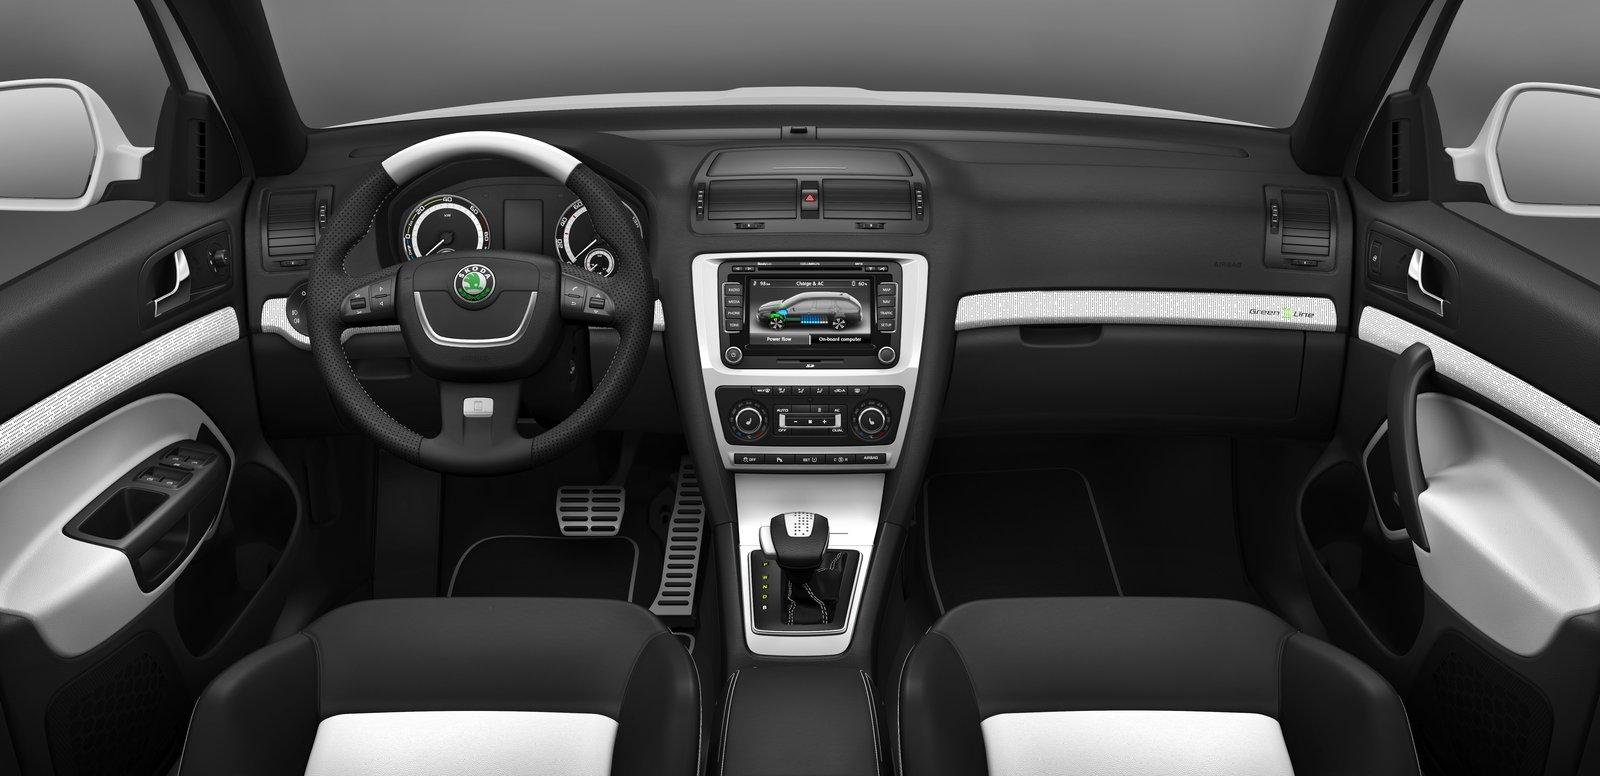 2011 skoda octavia review picture moto and car for Skoda octavia interior